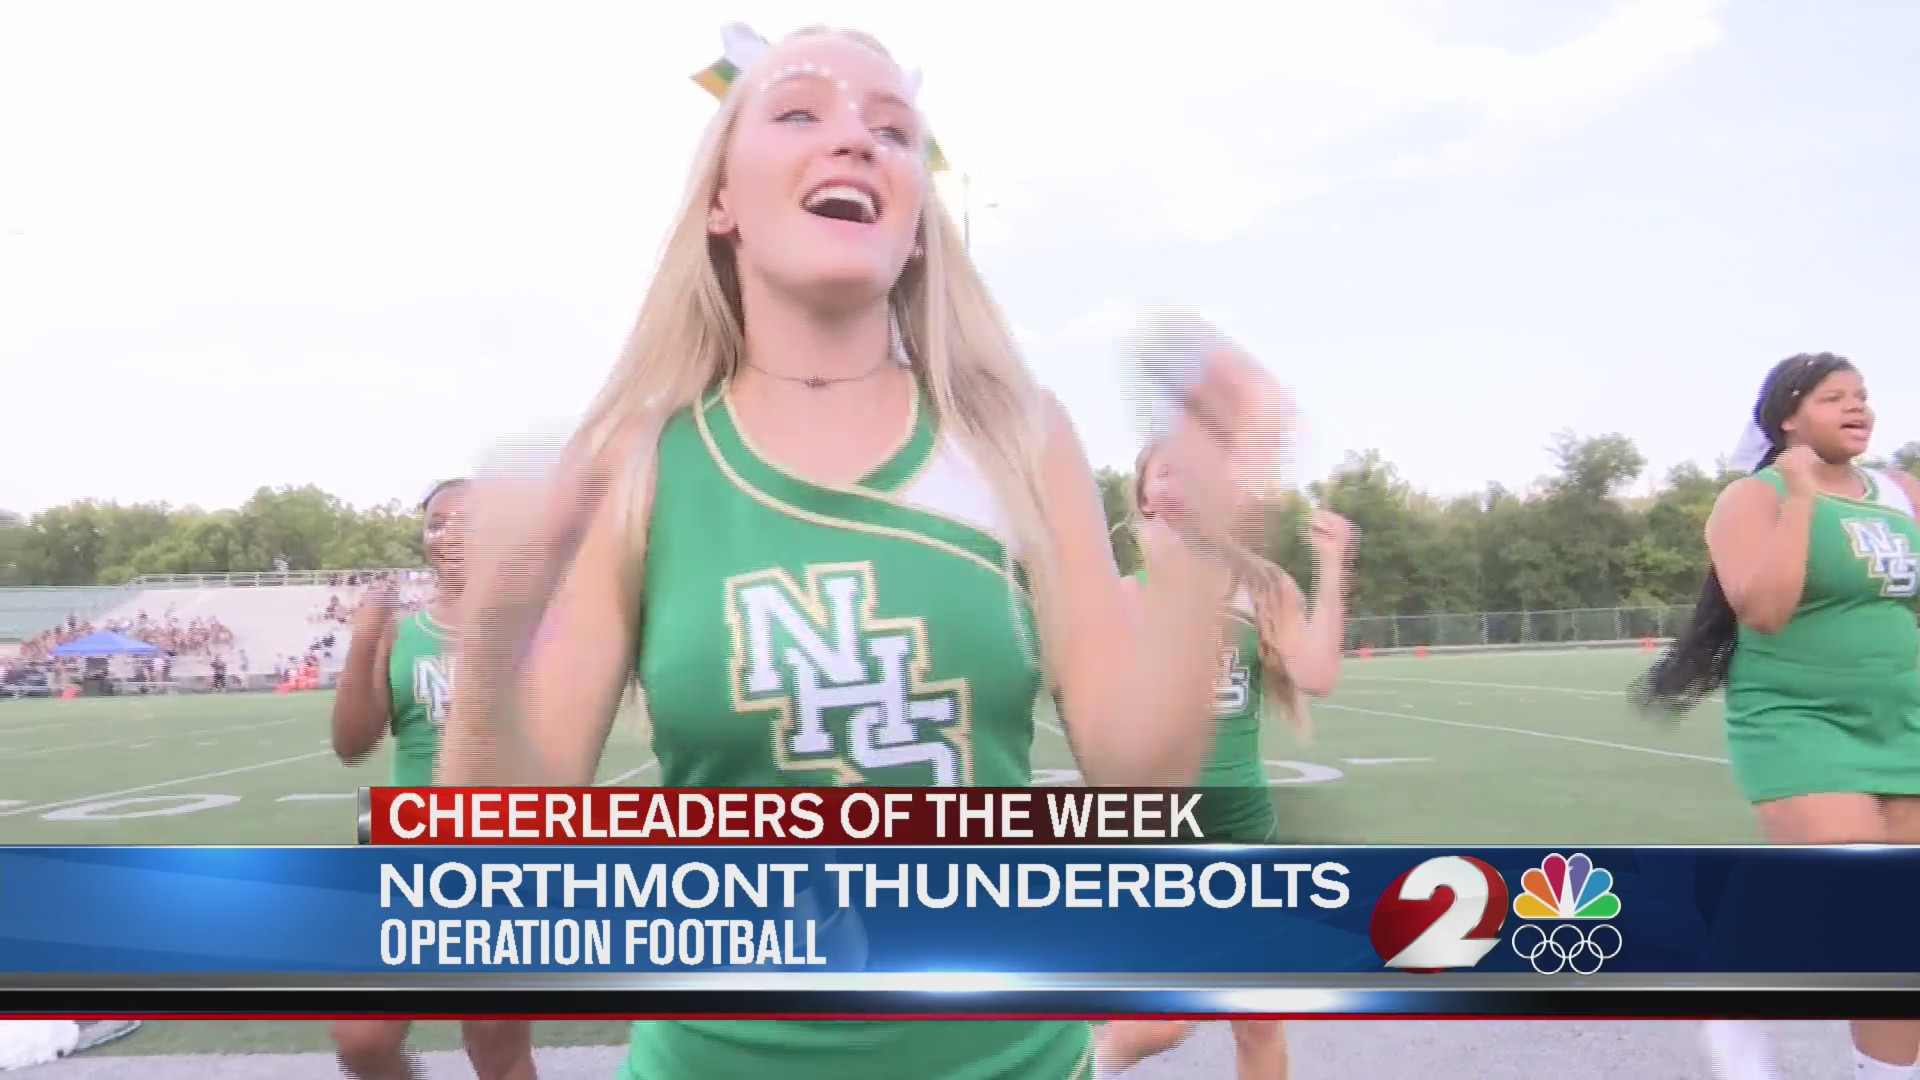 Operation Football Week 3 Cheerleaders of the Week: Northmont Thunderbolts